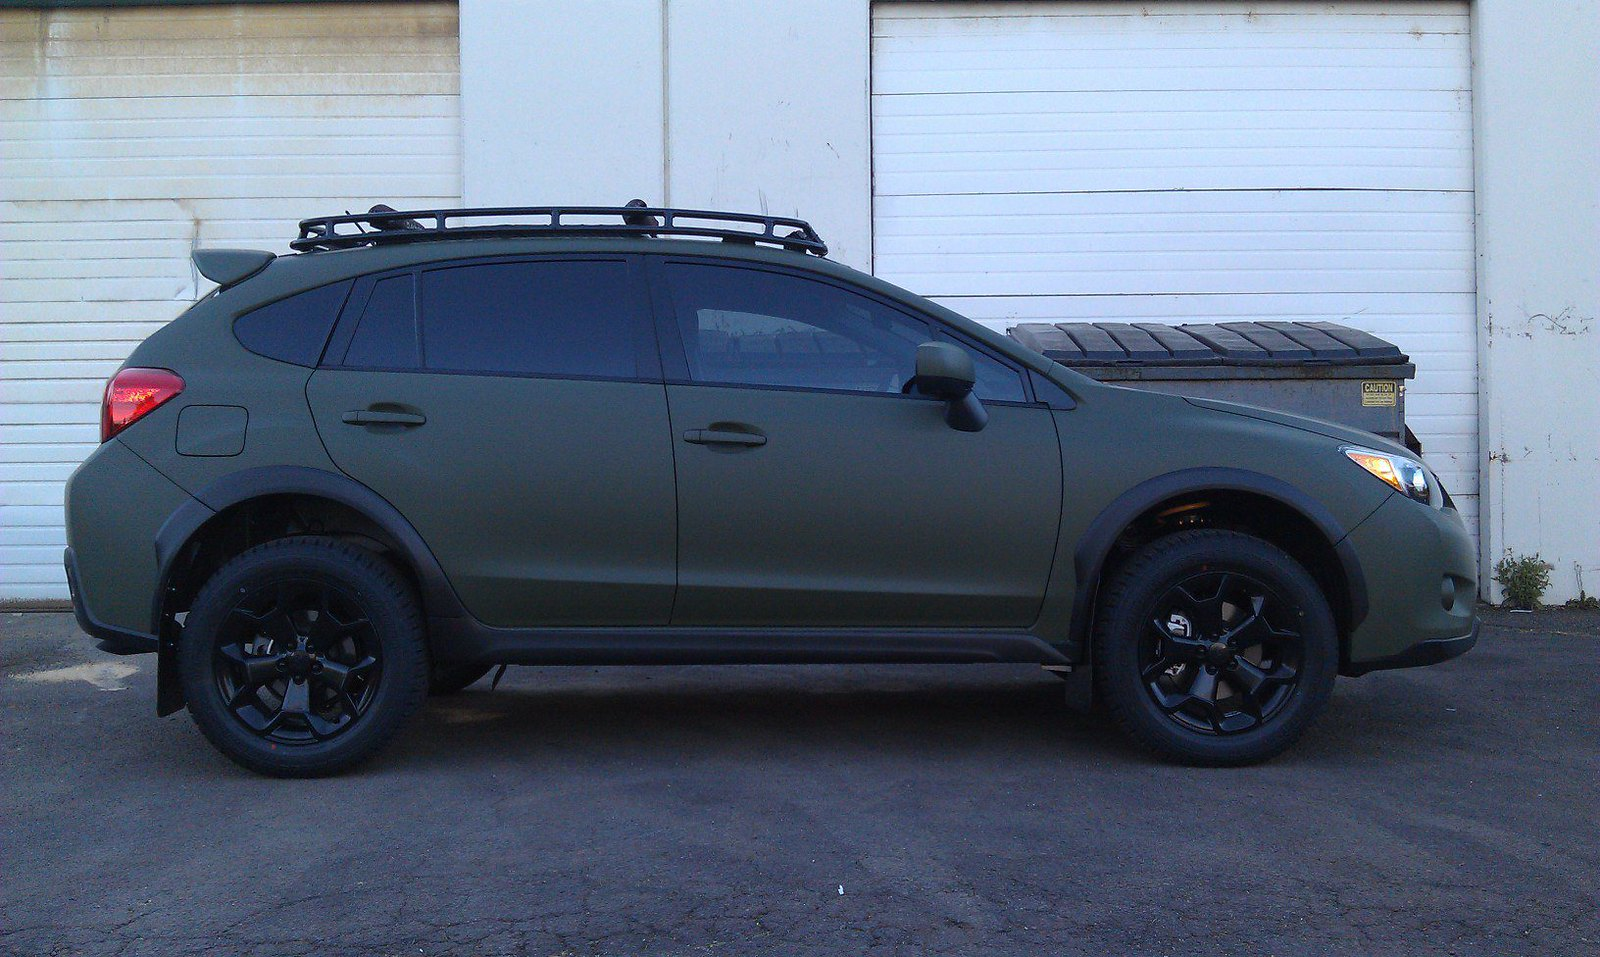 Awesome custom crosstrek